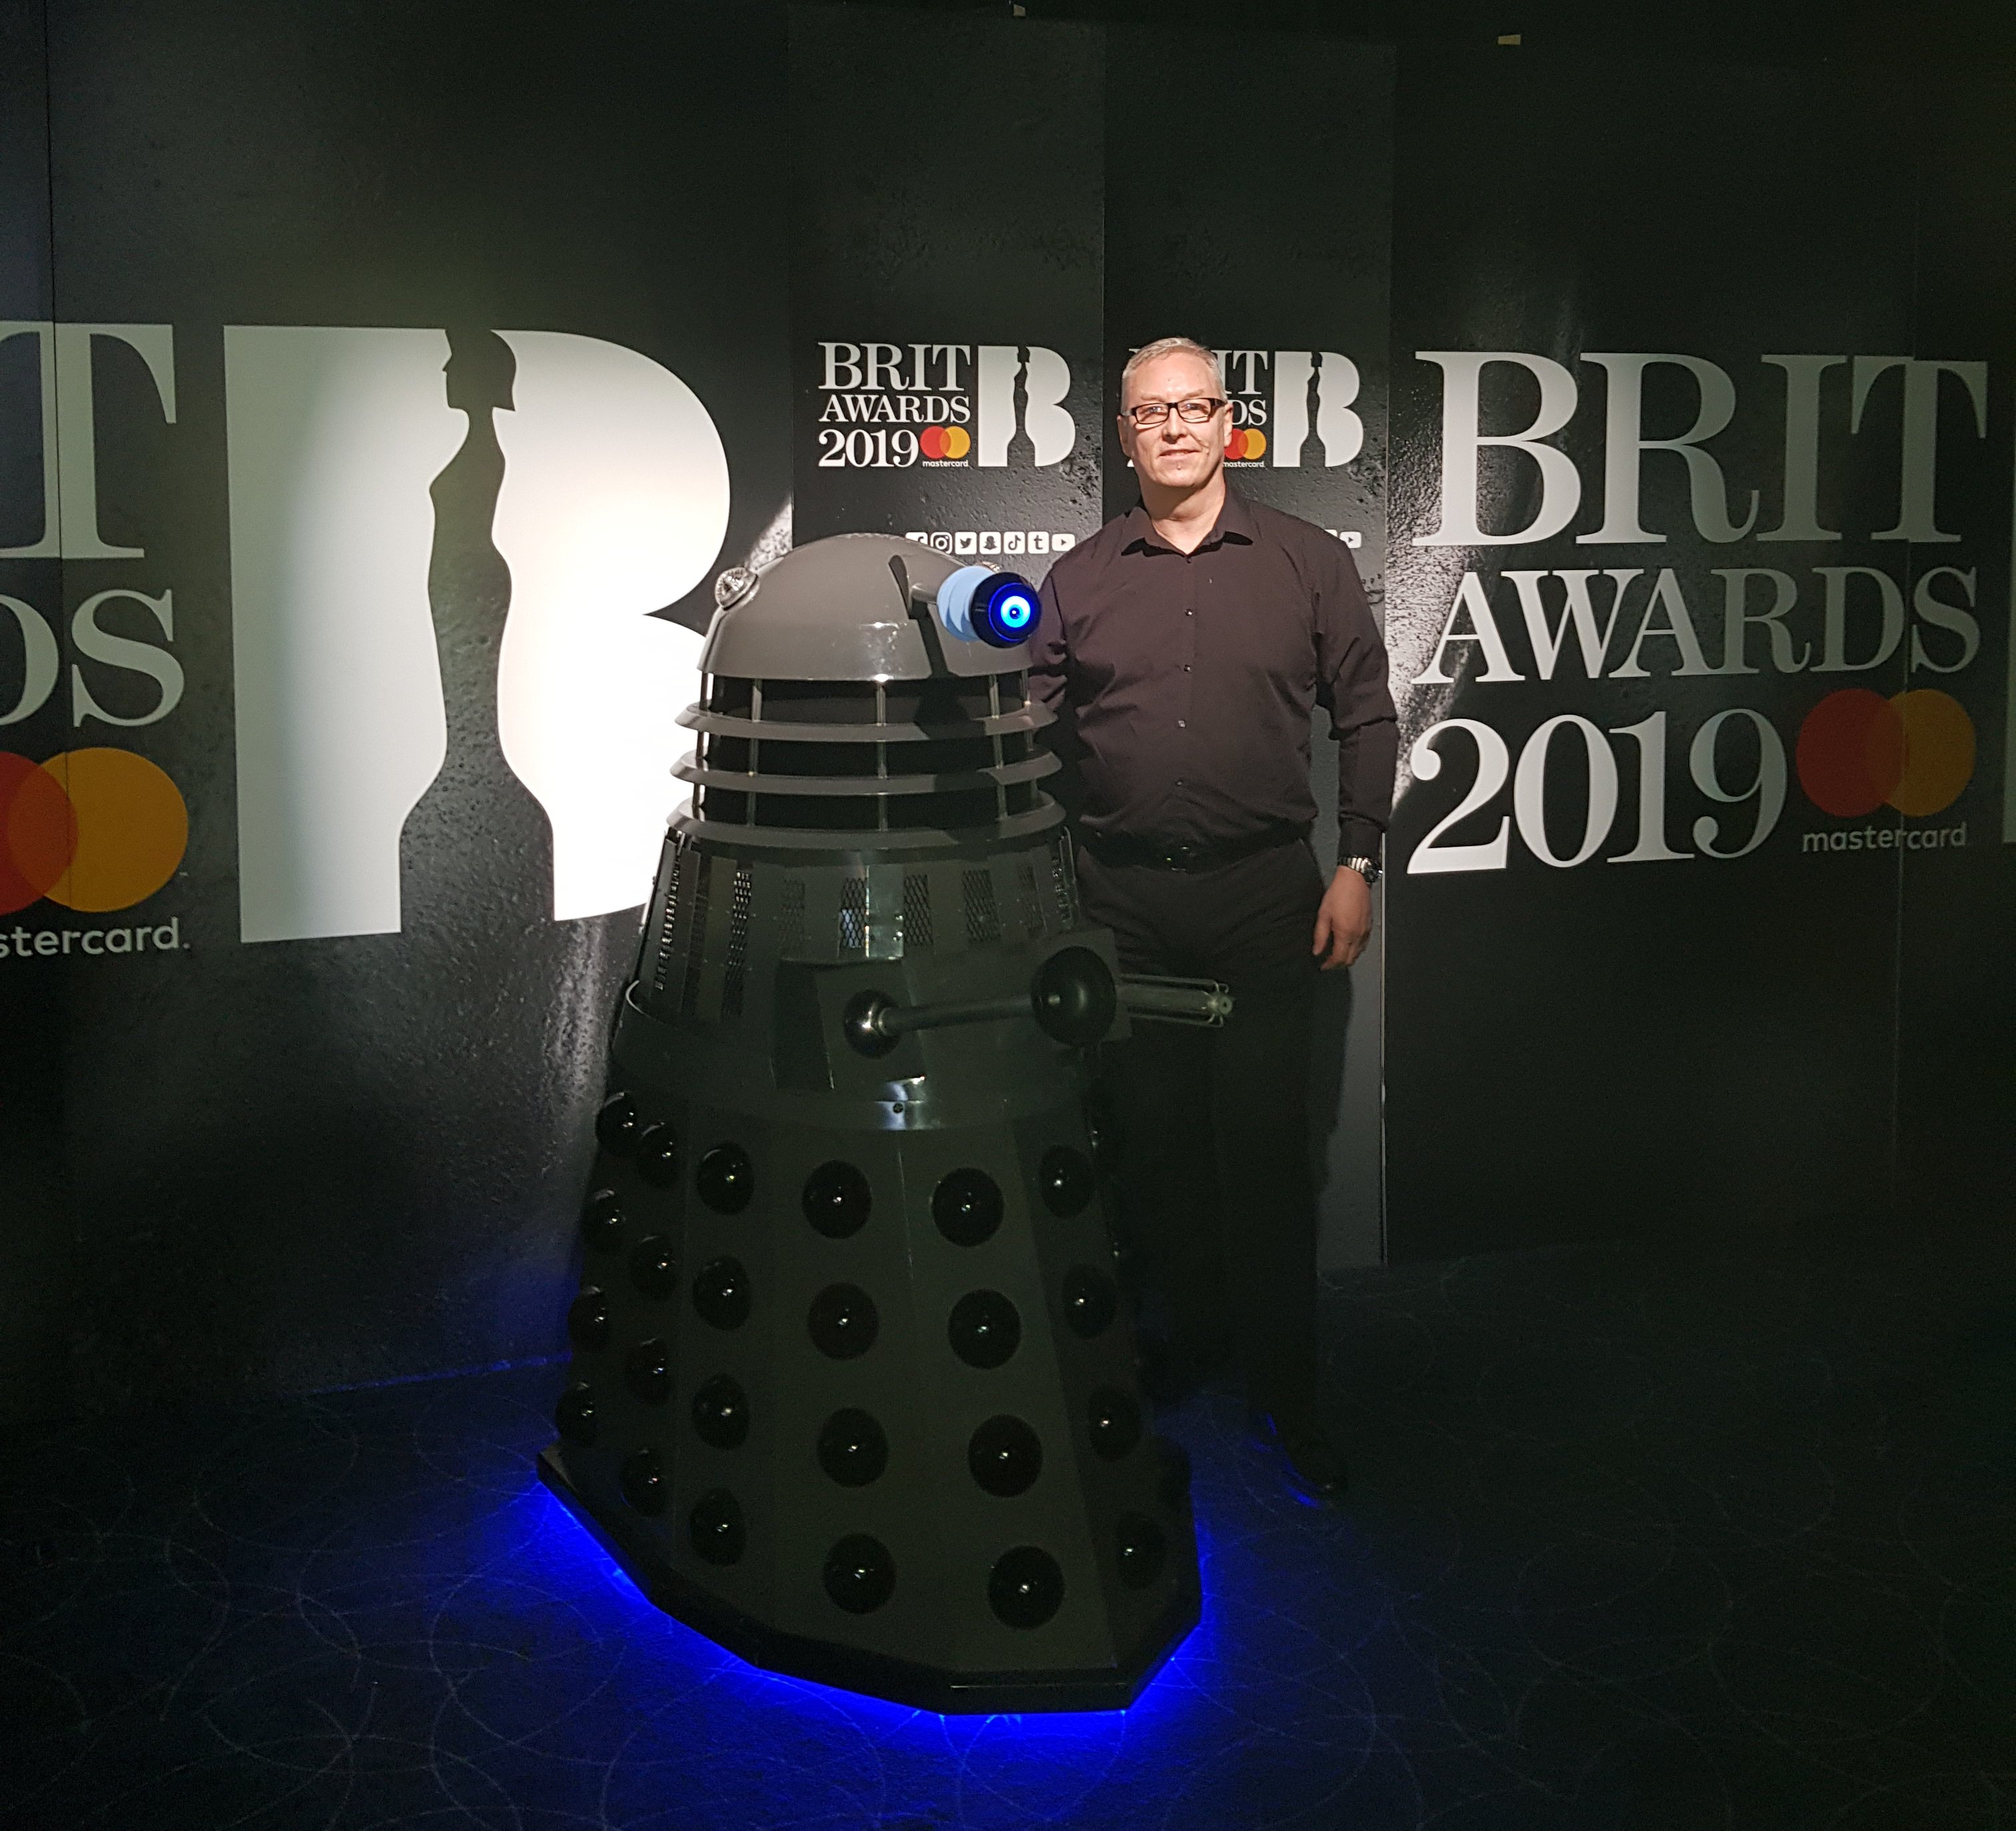 Me and my boy at THE BRITS